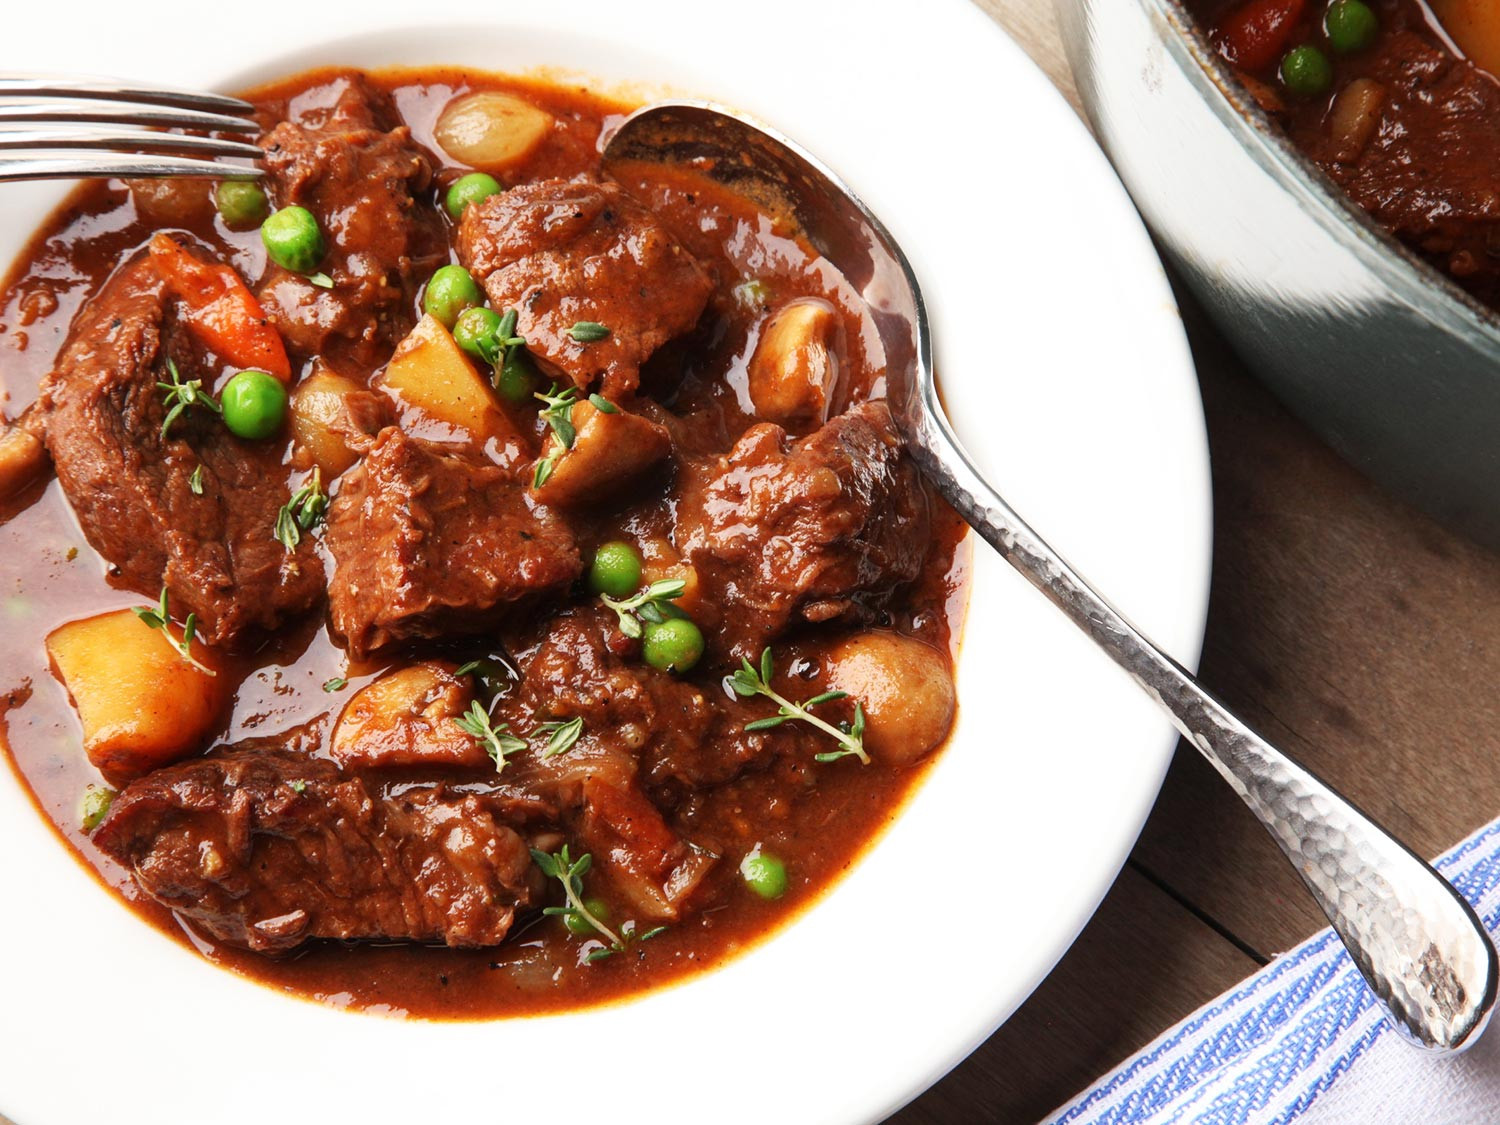 Recipes For Beef Stew  Stew Science What s the Best Way to Brown Beef